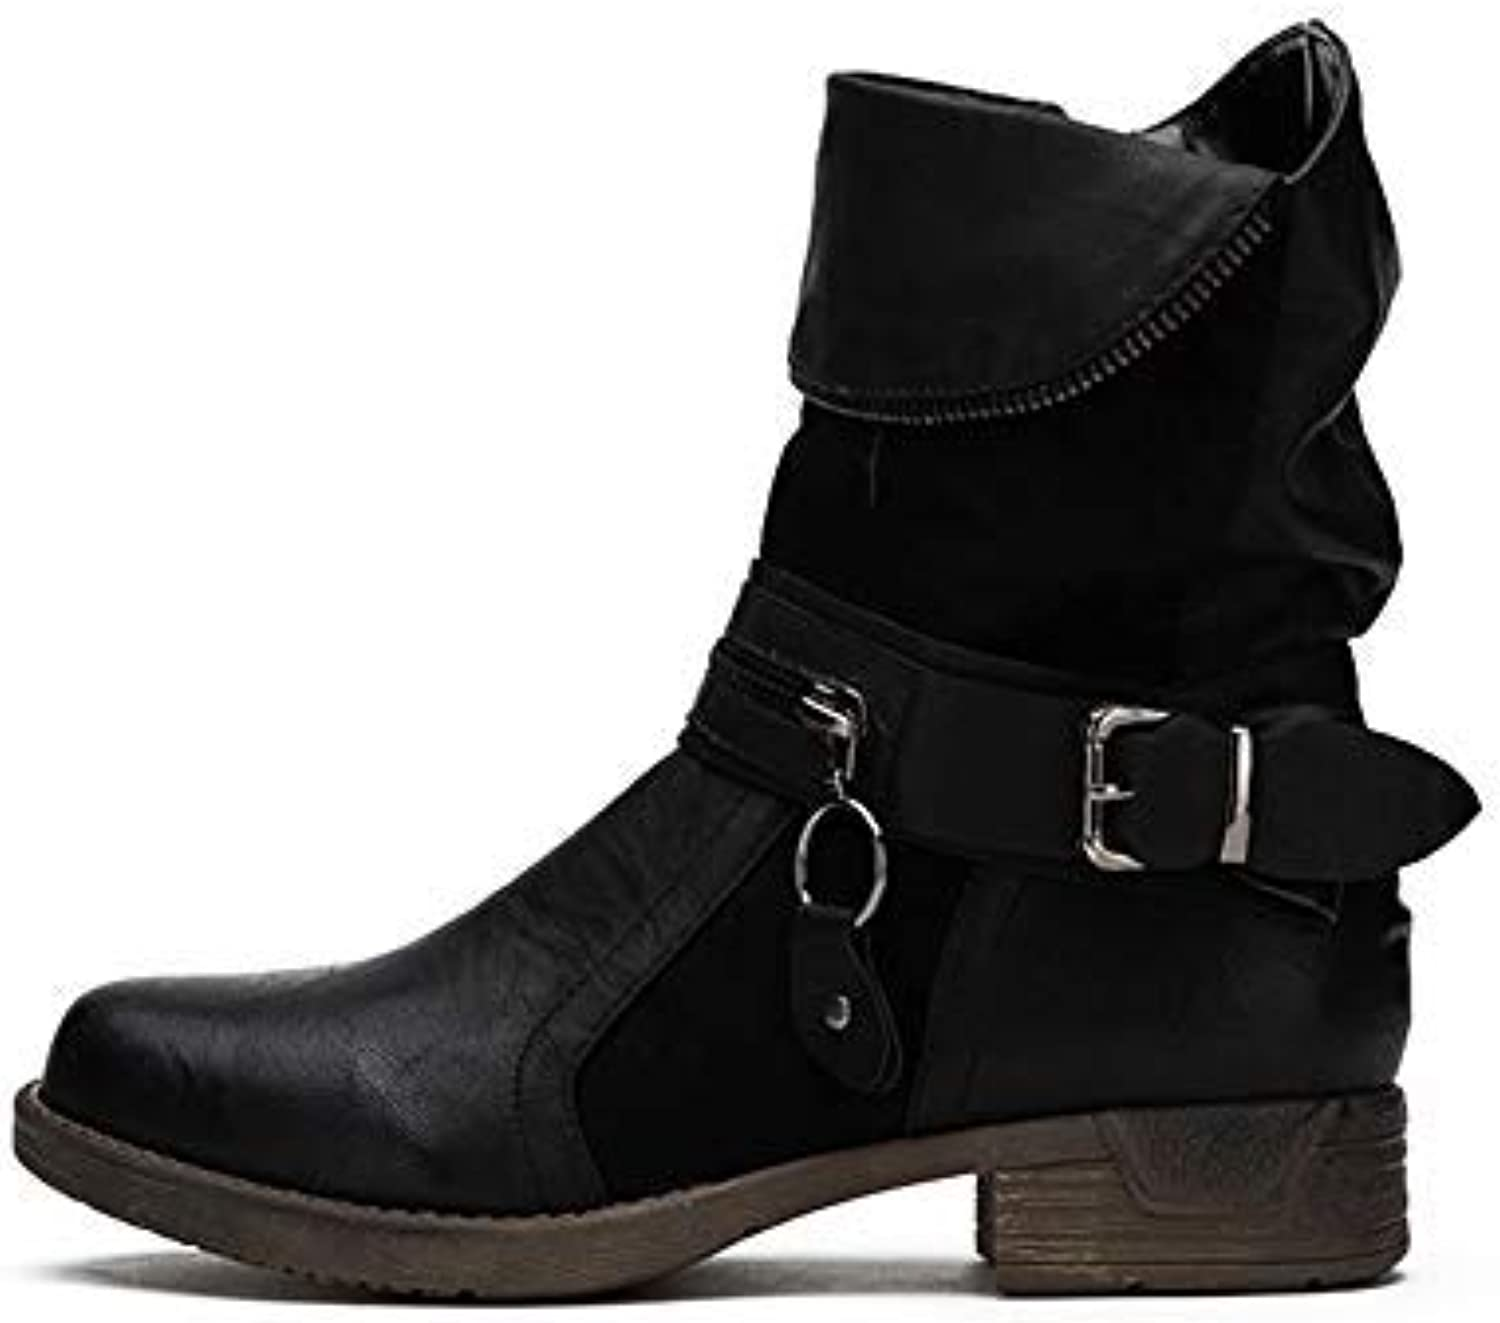 LALA IKAI Women Leather Combat Boots Low Heel Ankle Biker Boots with Side Zipper Casual shoes